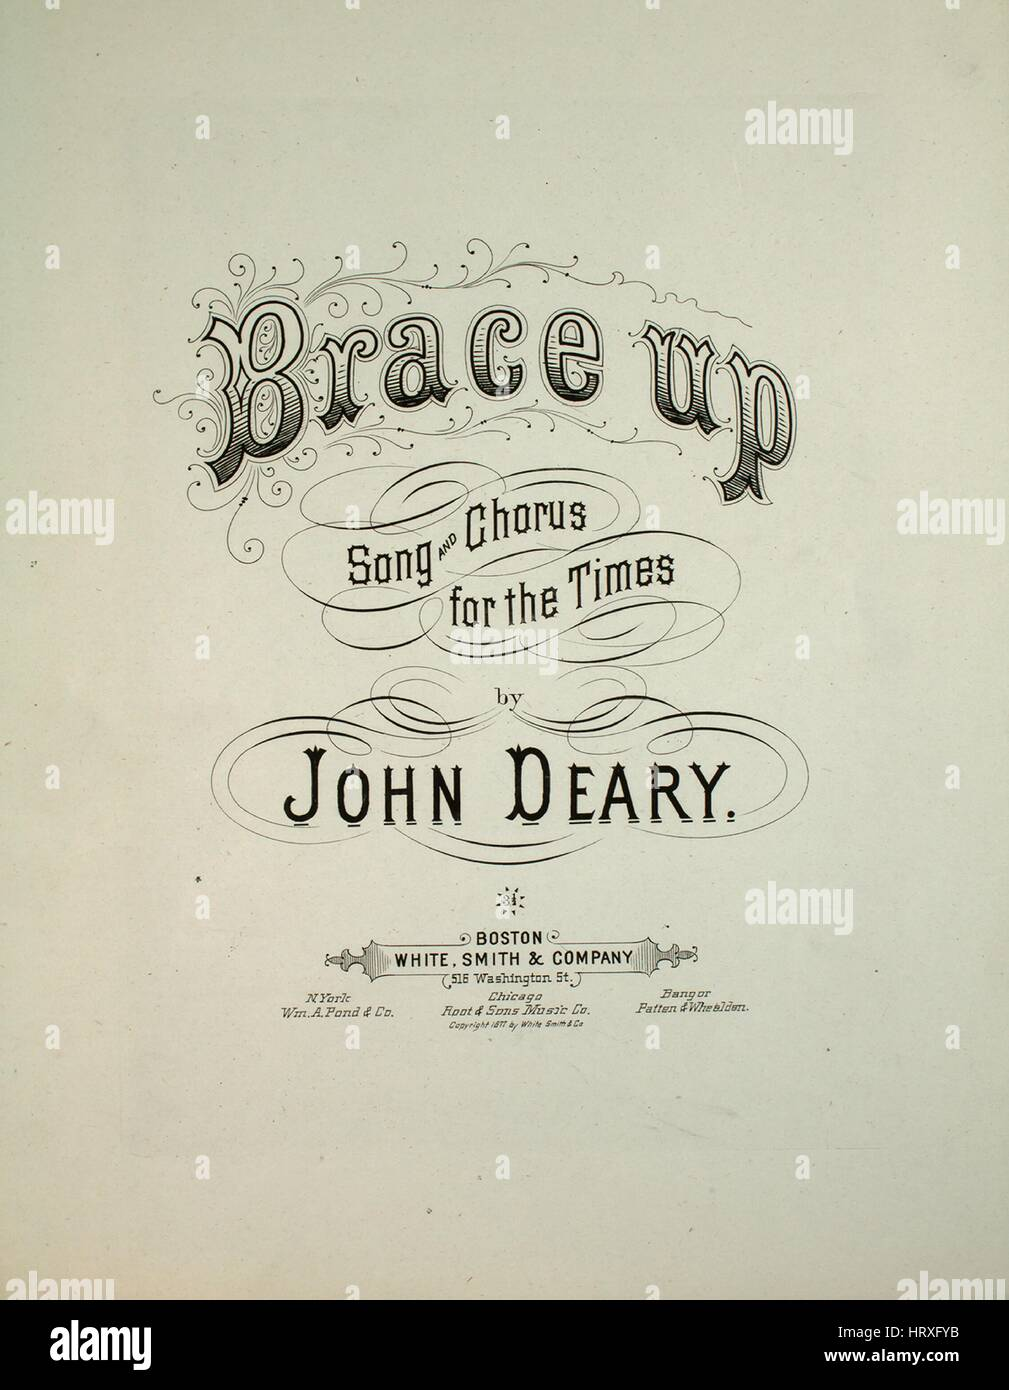 Sheet music cover image of the song 'Brace Up Song and Chorus for